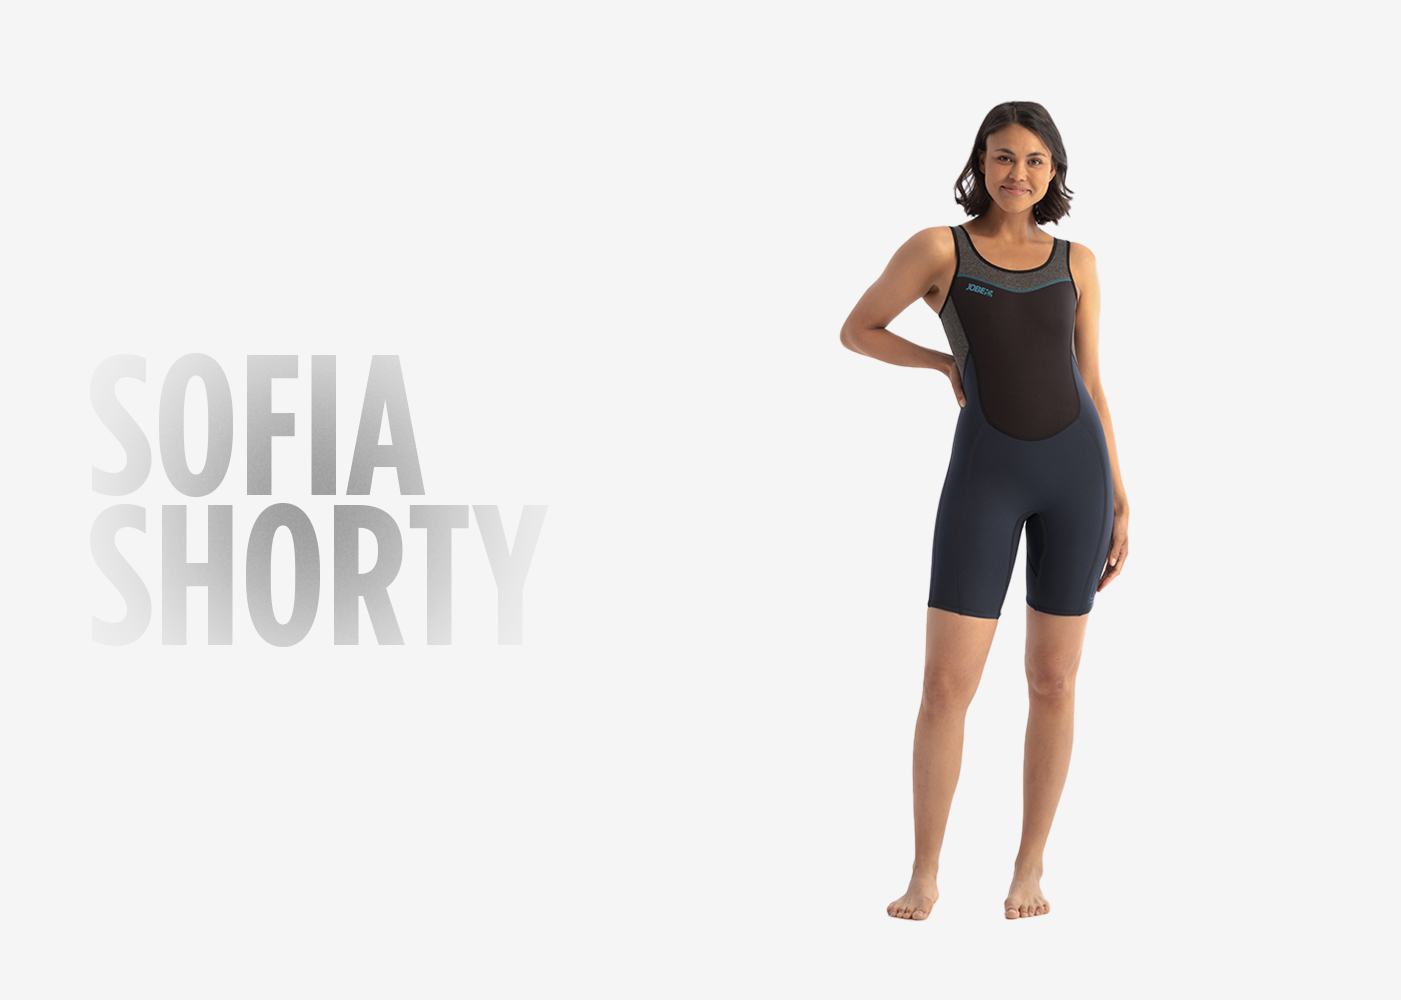 Jobe Sofia Shorty Sleeveless